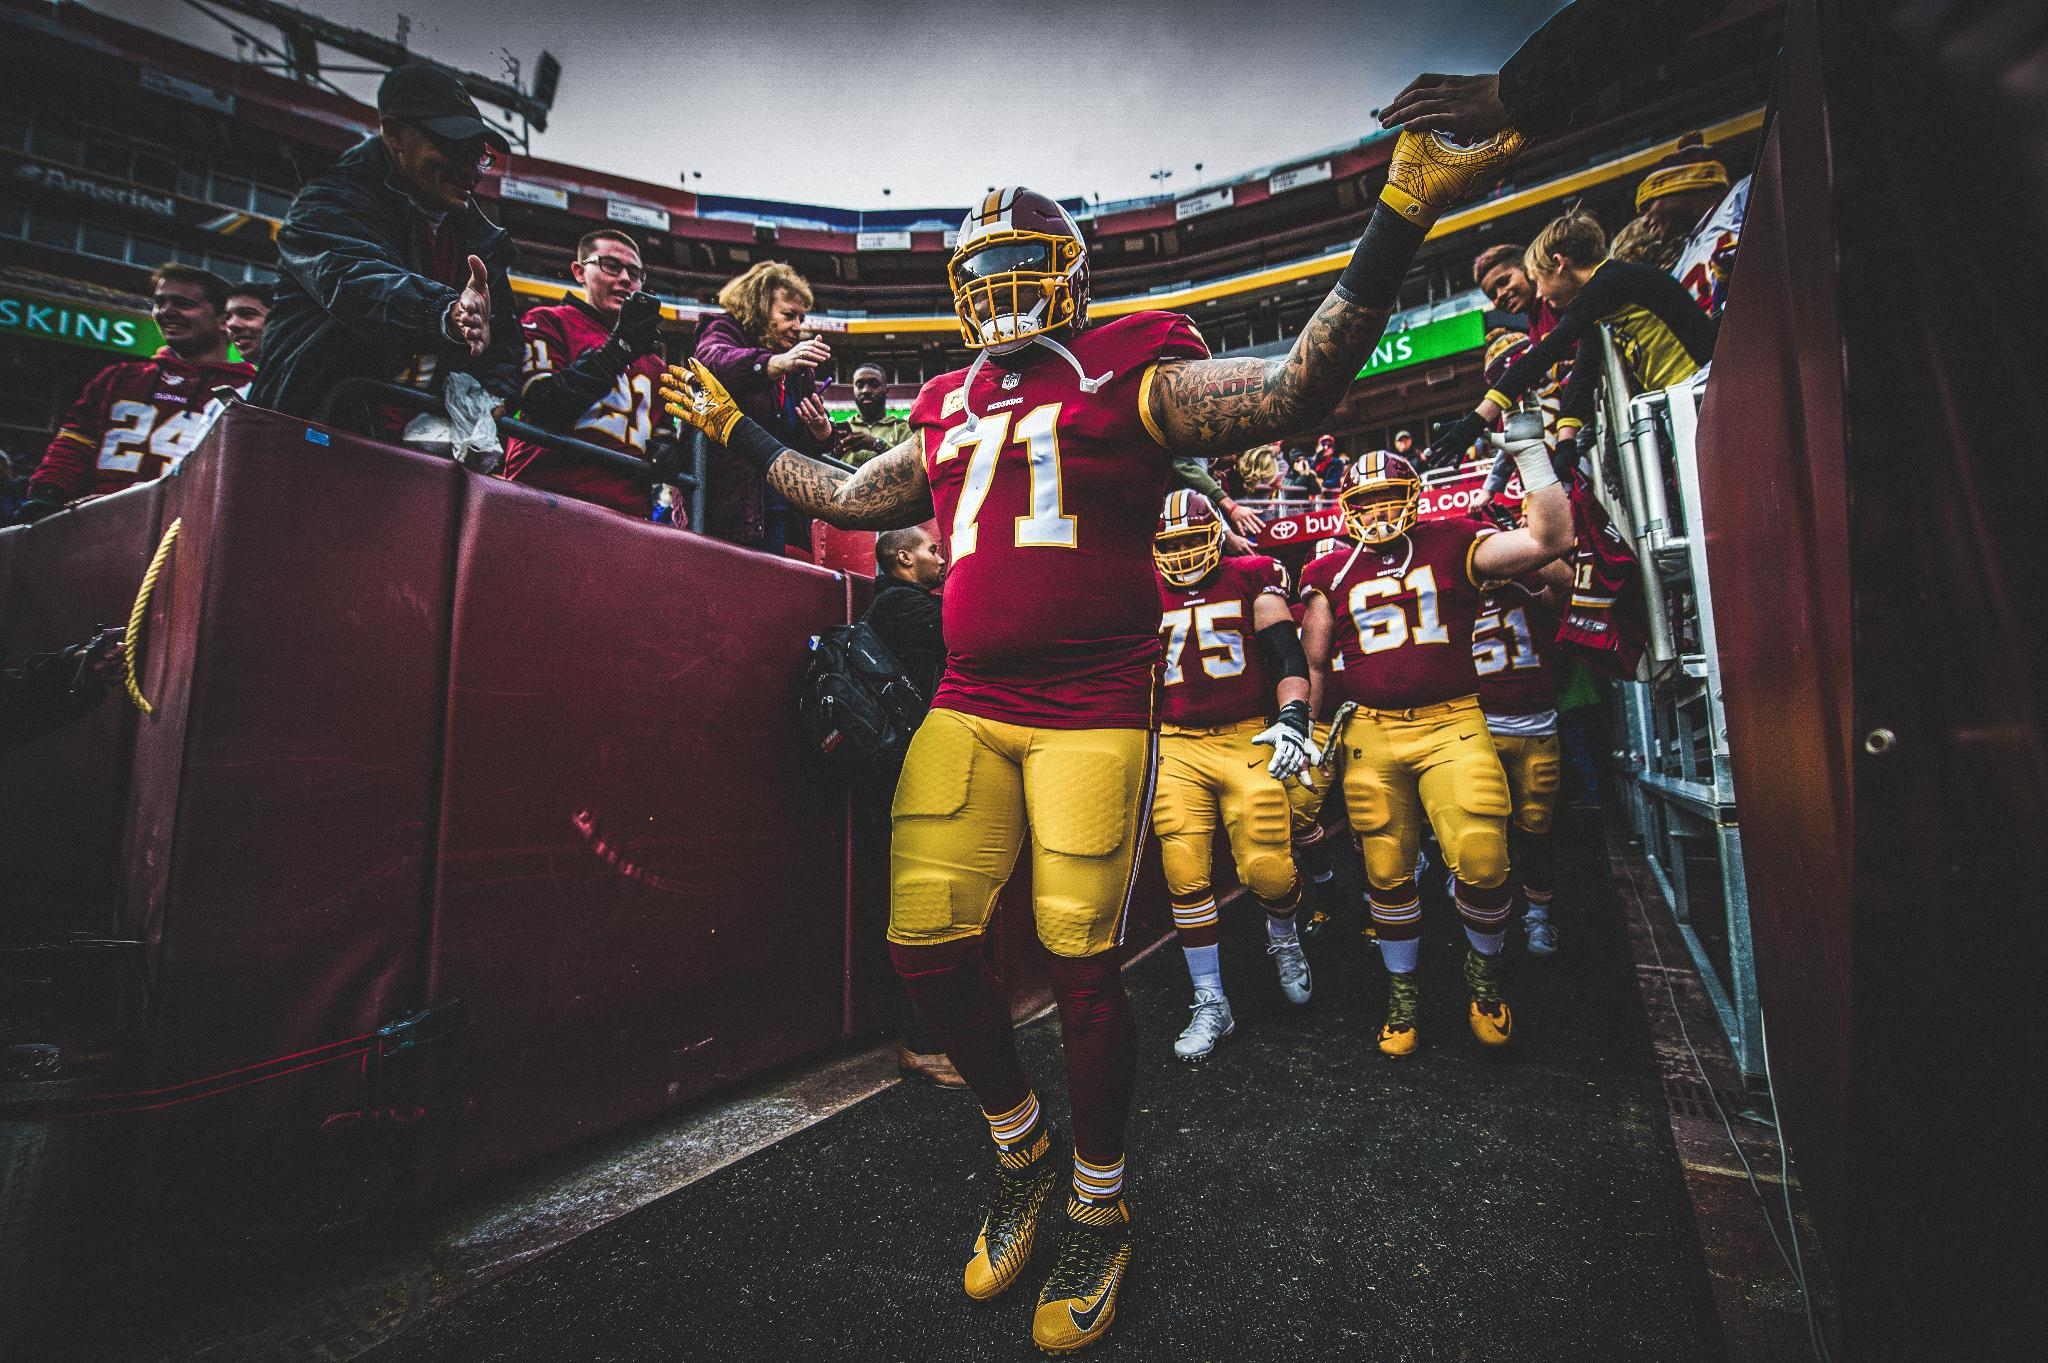 Missing Sunday football. #HTTR https://t.co/WtFwLUZ5nS